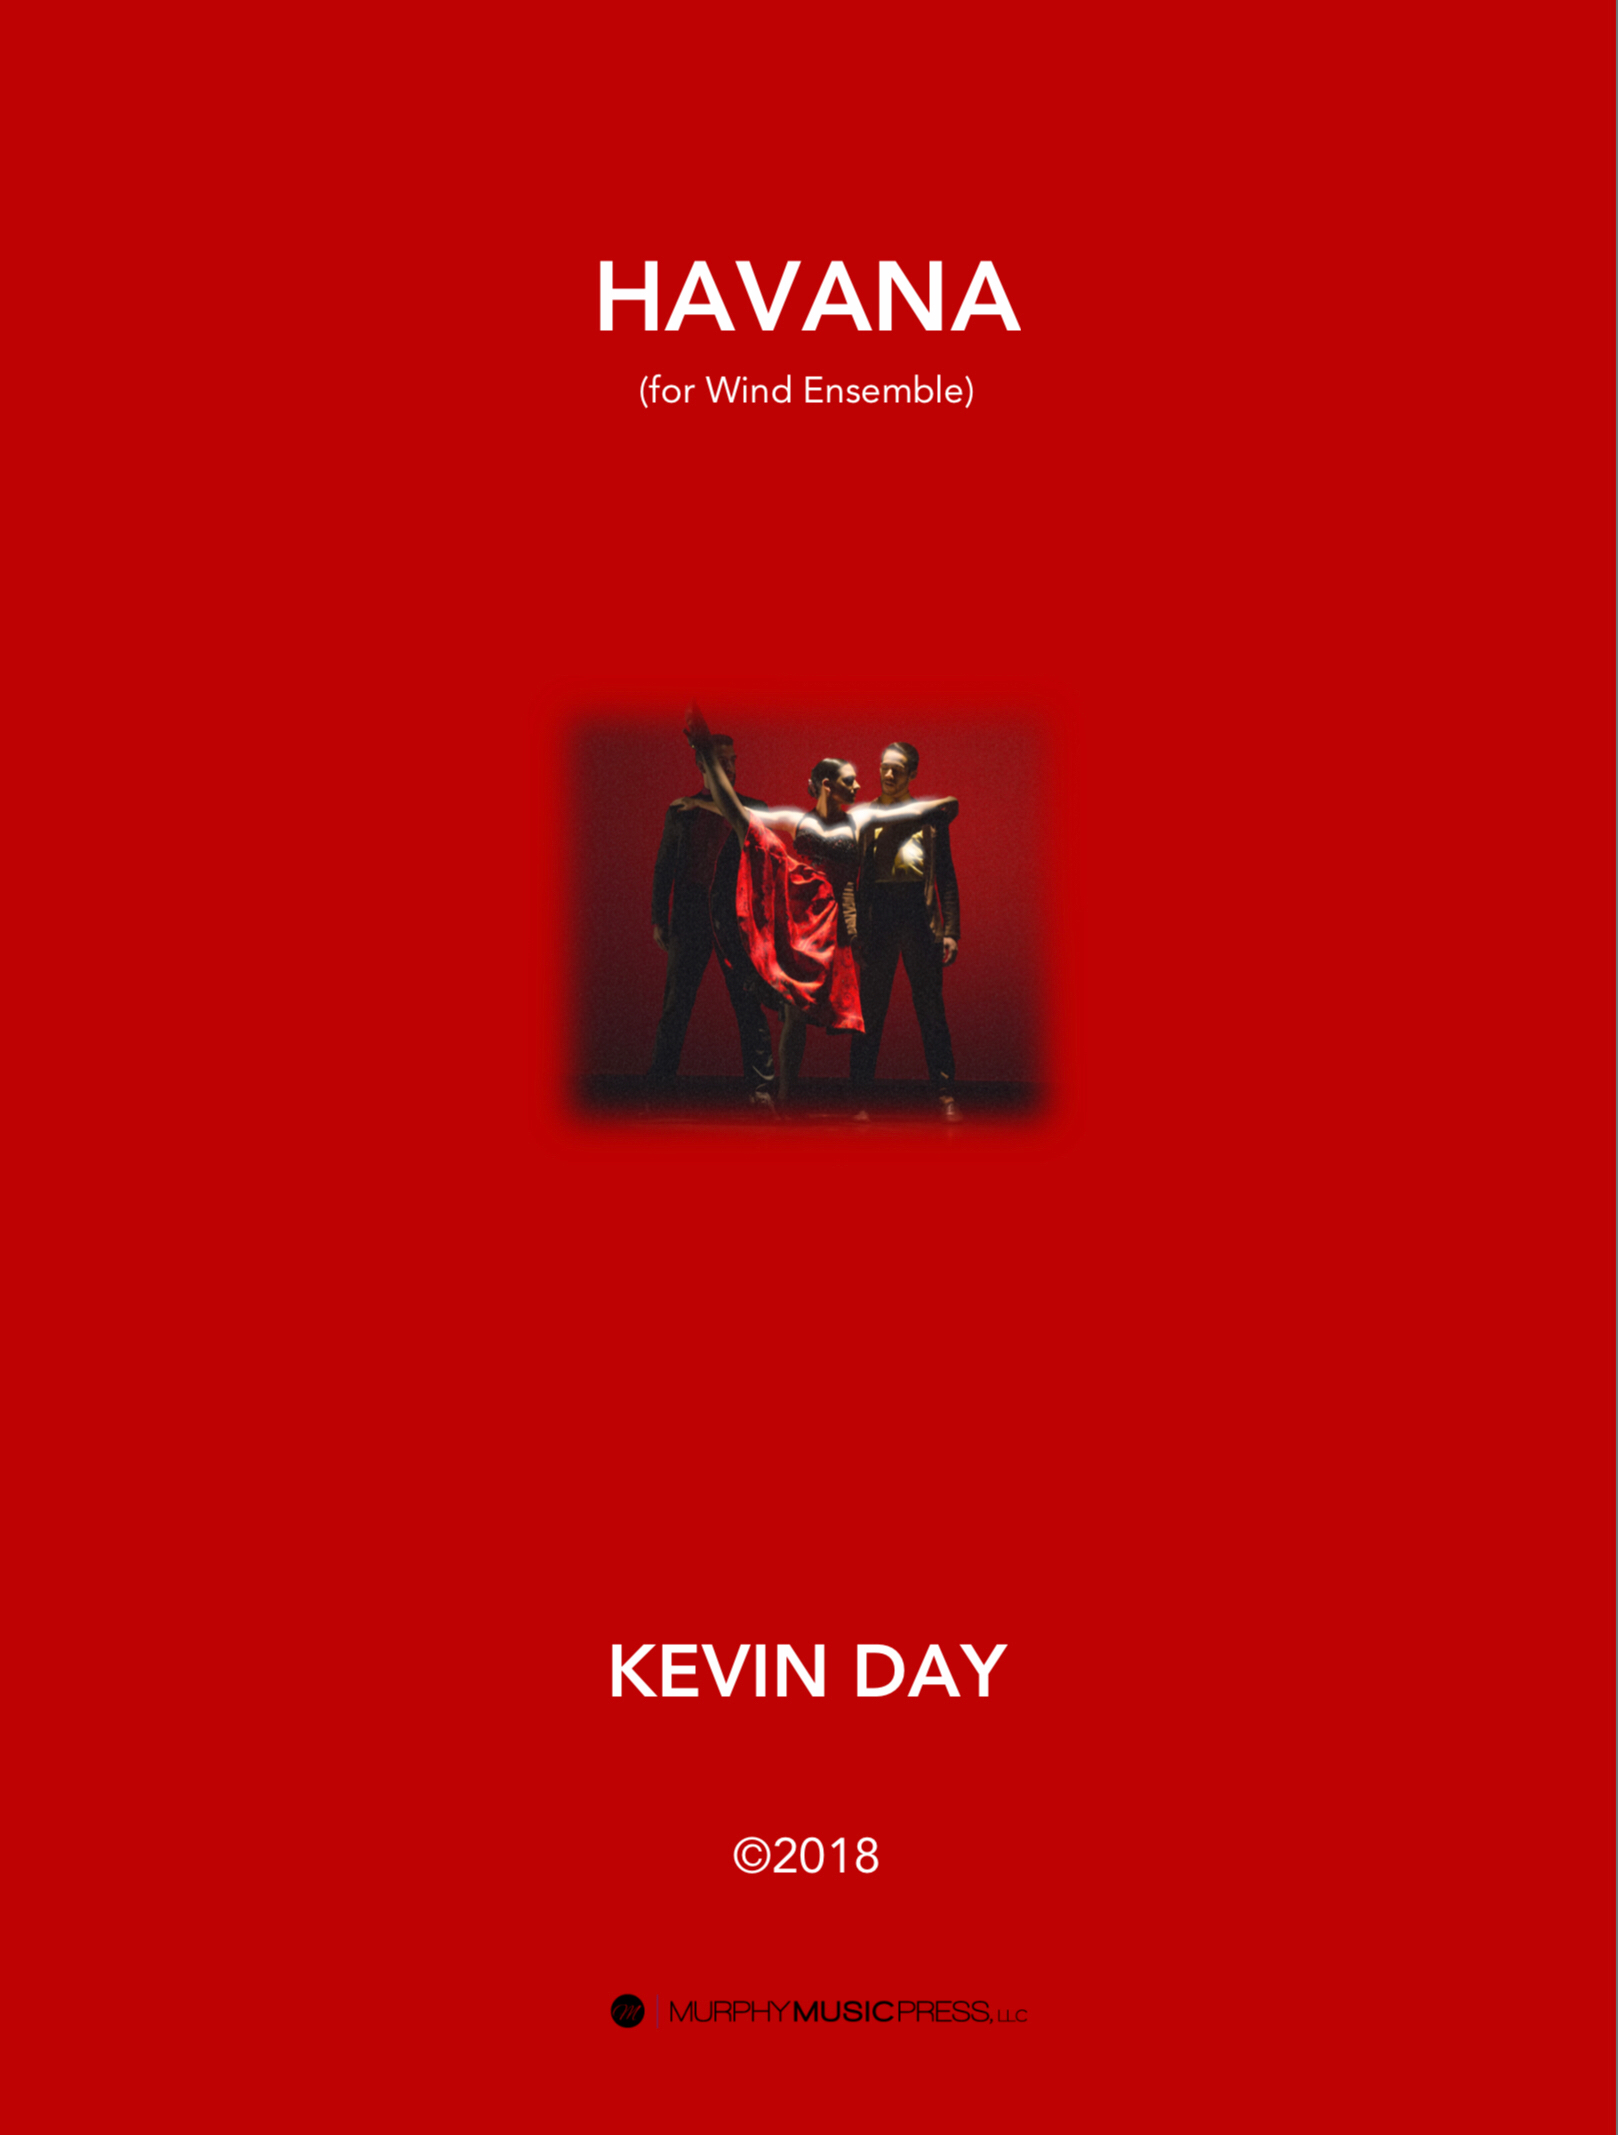 Havana by Kevin Day